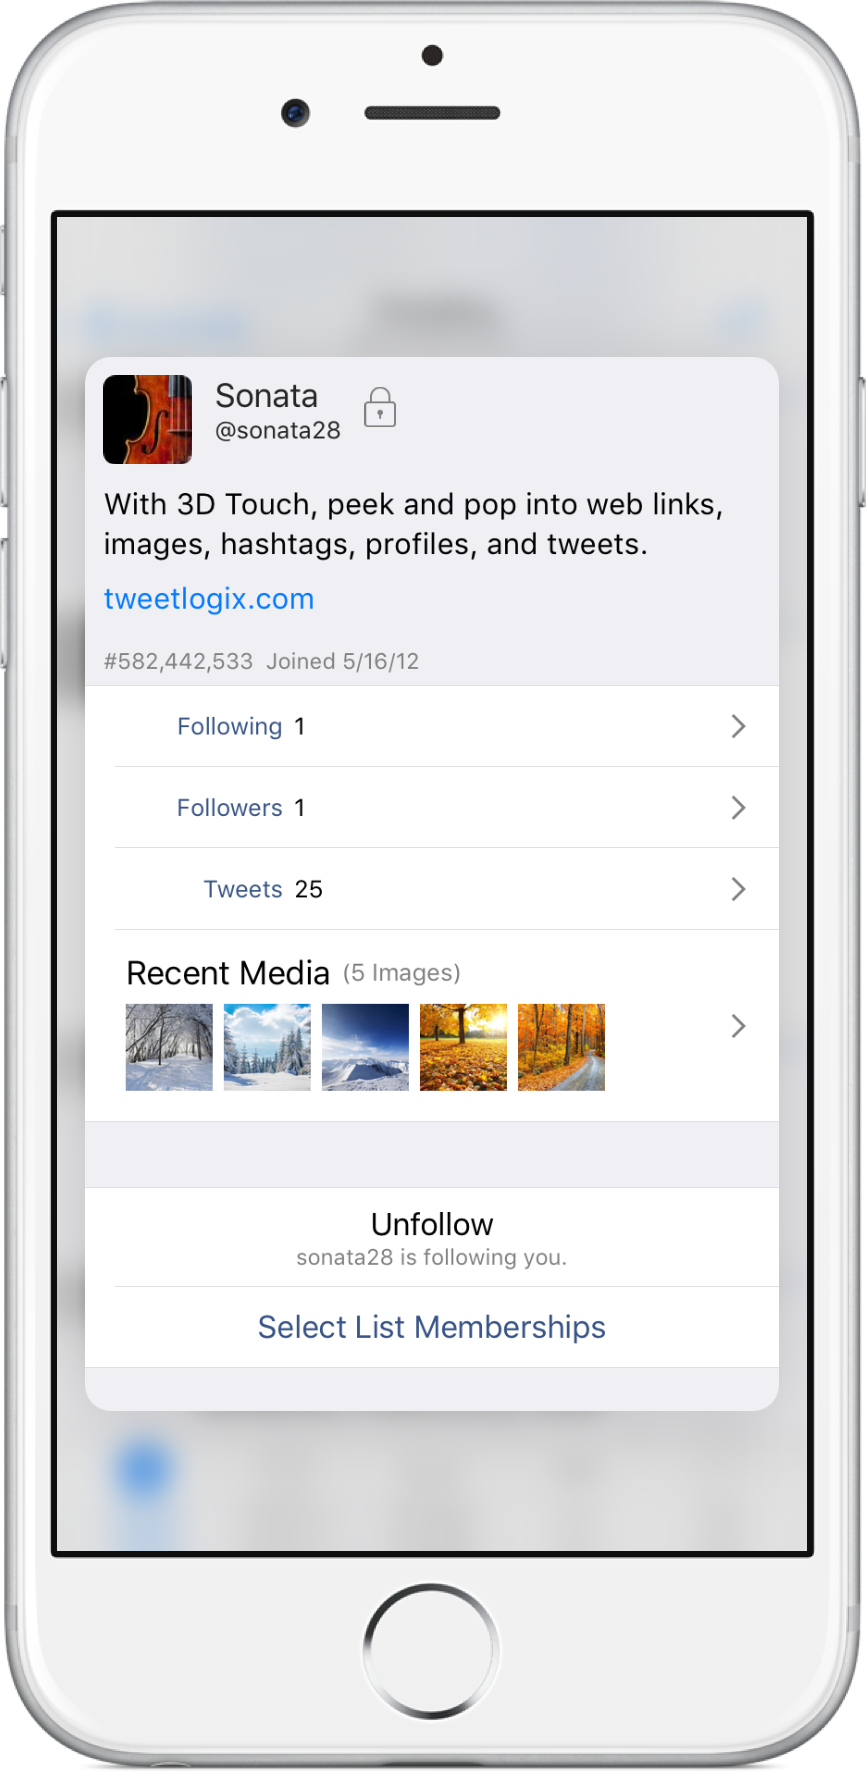 3D Touch on iPhone 6s